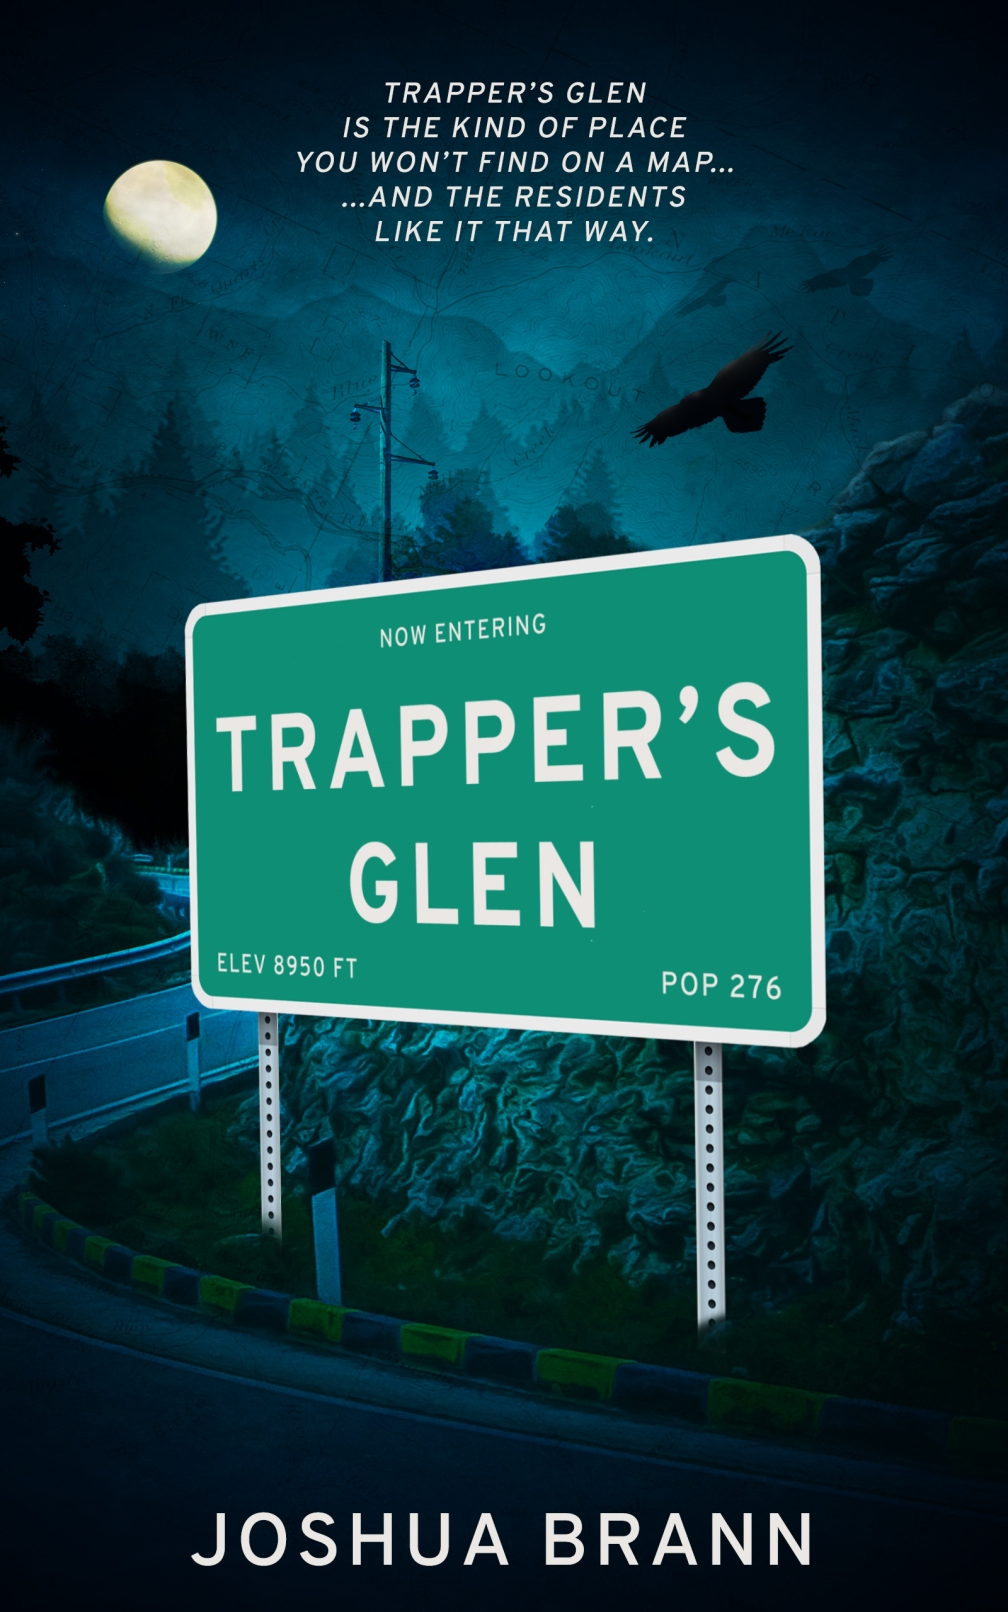 Trappers_Glen_Simple_Revised